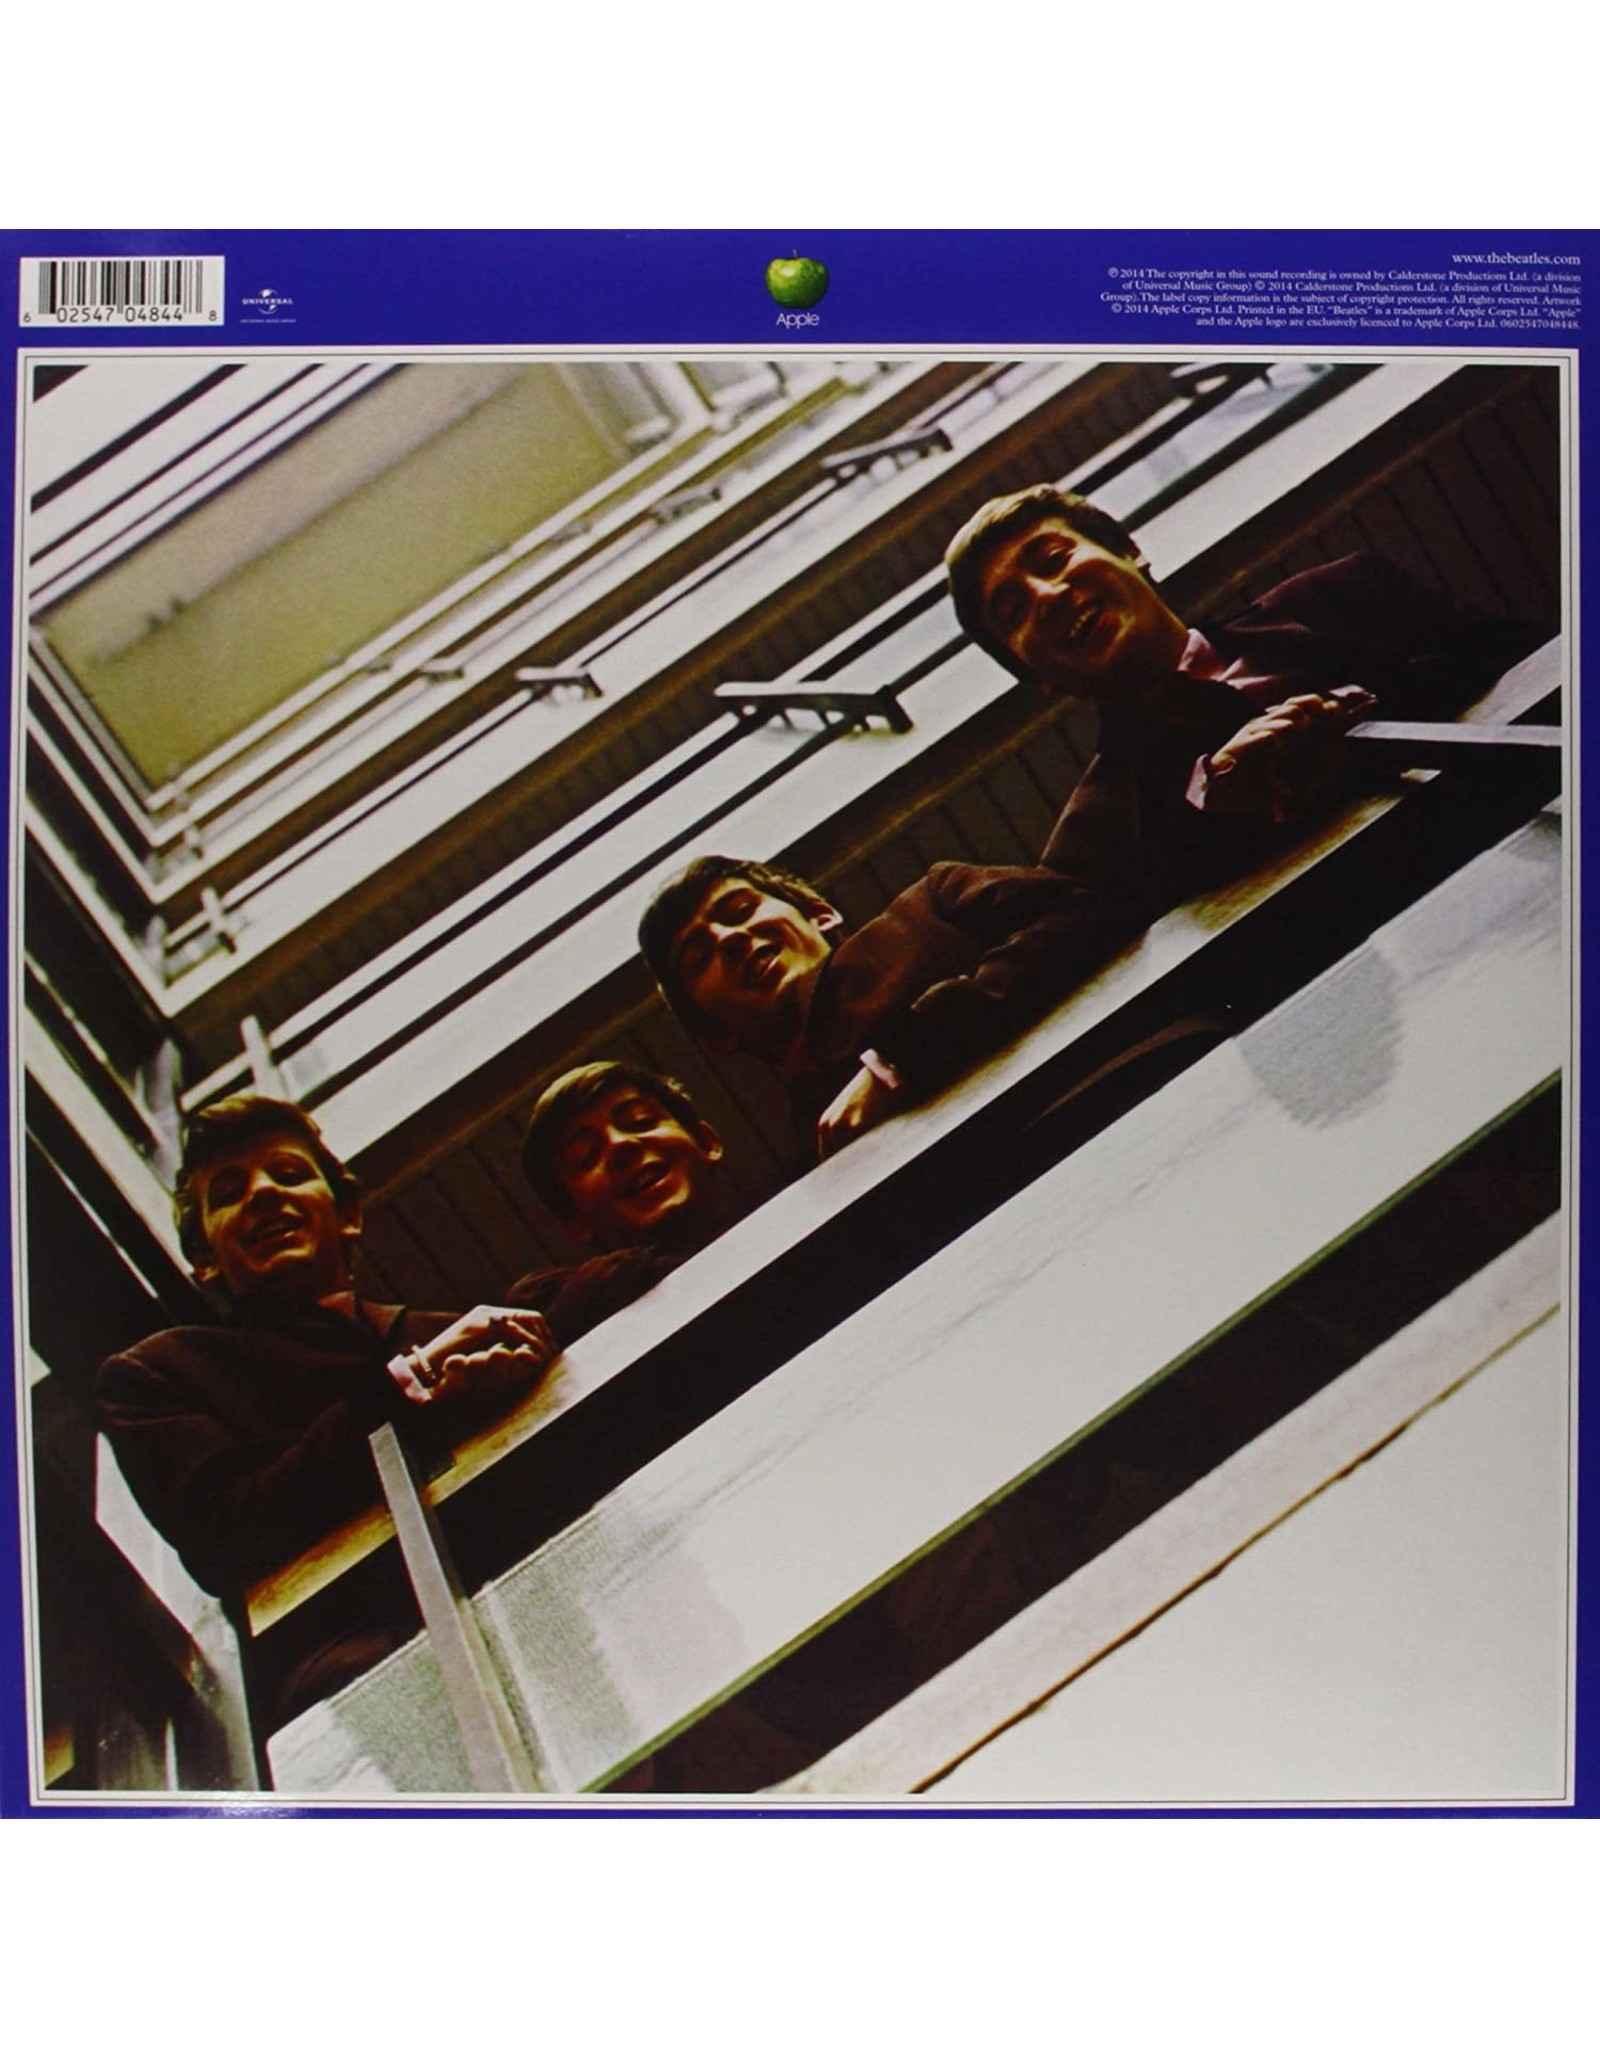 Beatles - 1967-1970 (Blue Album)